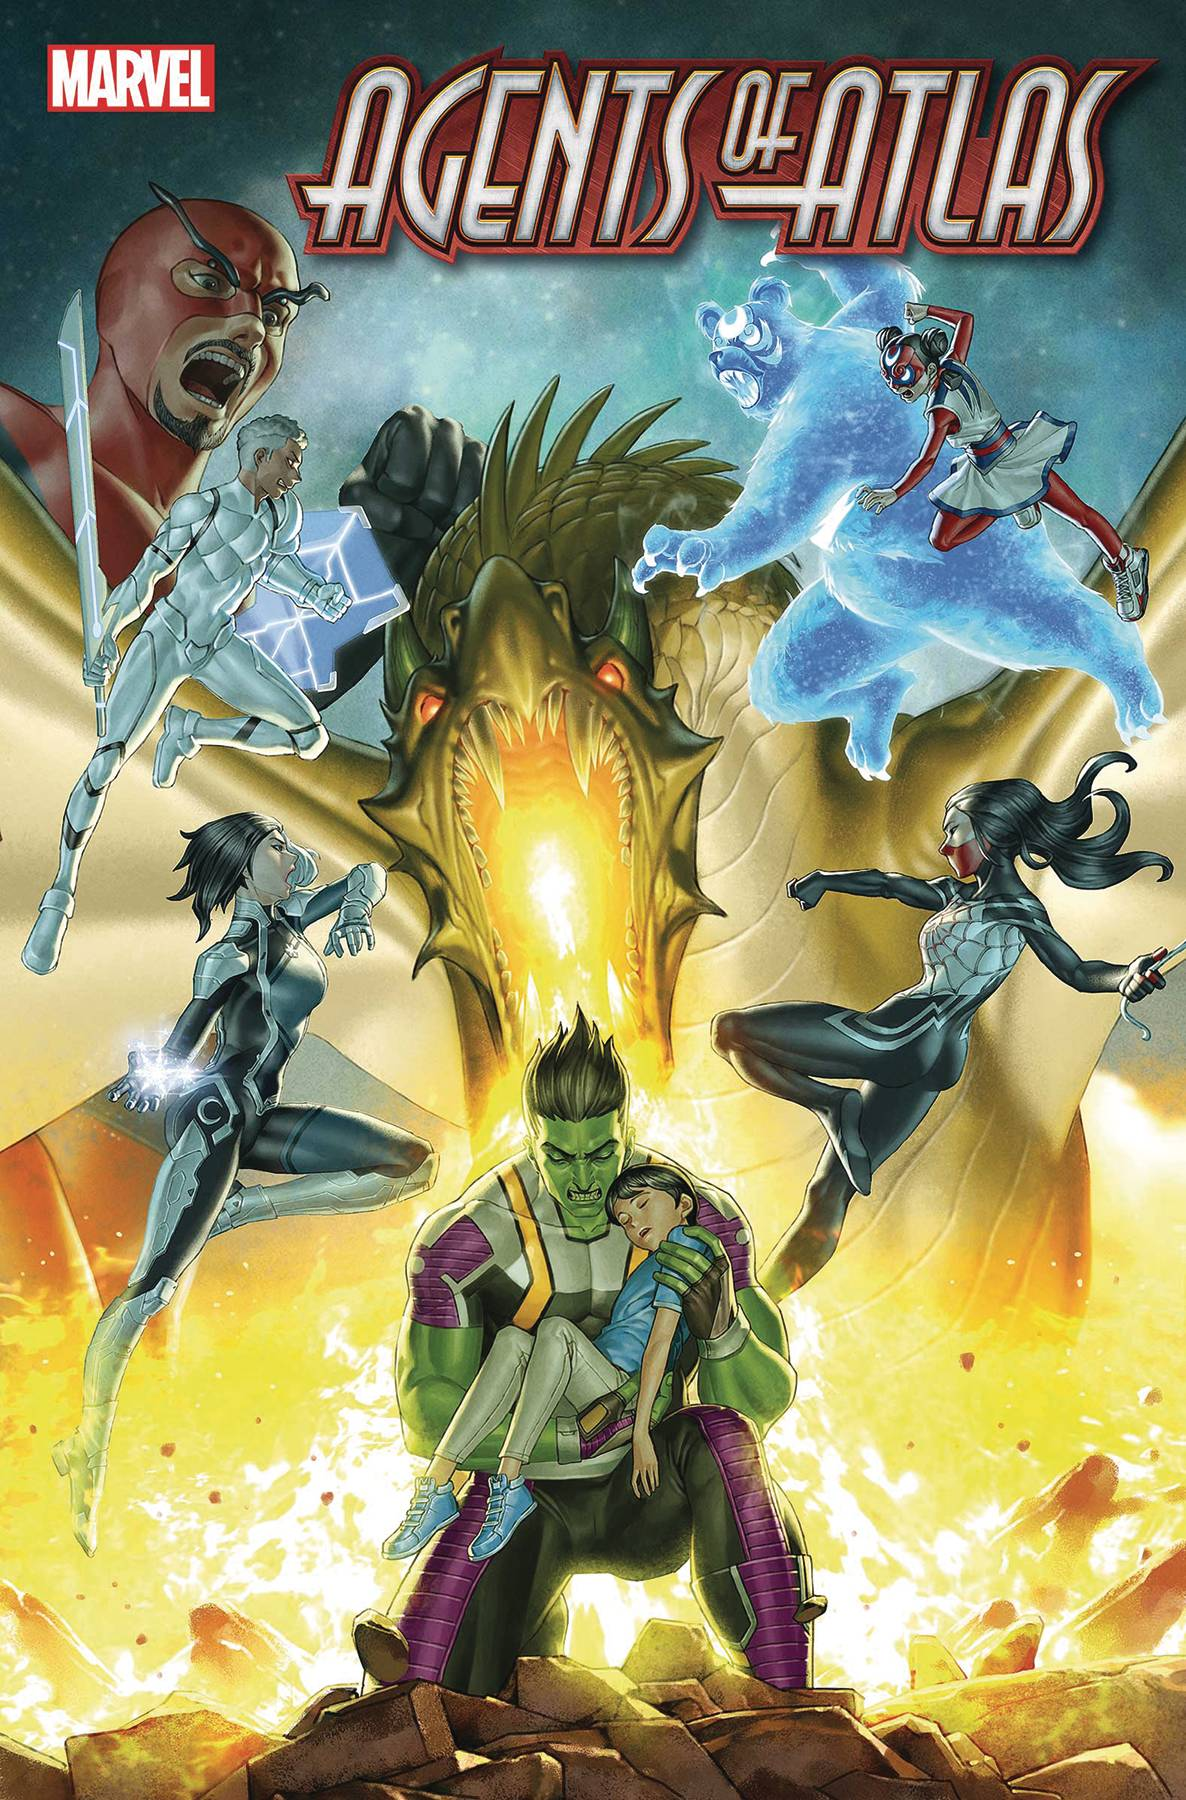 12/18/2019 AGENTS OF ATLAS #5 (OF 5)